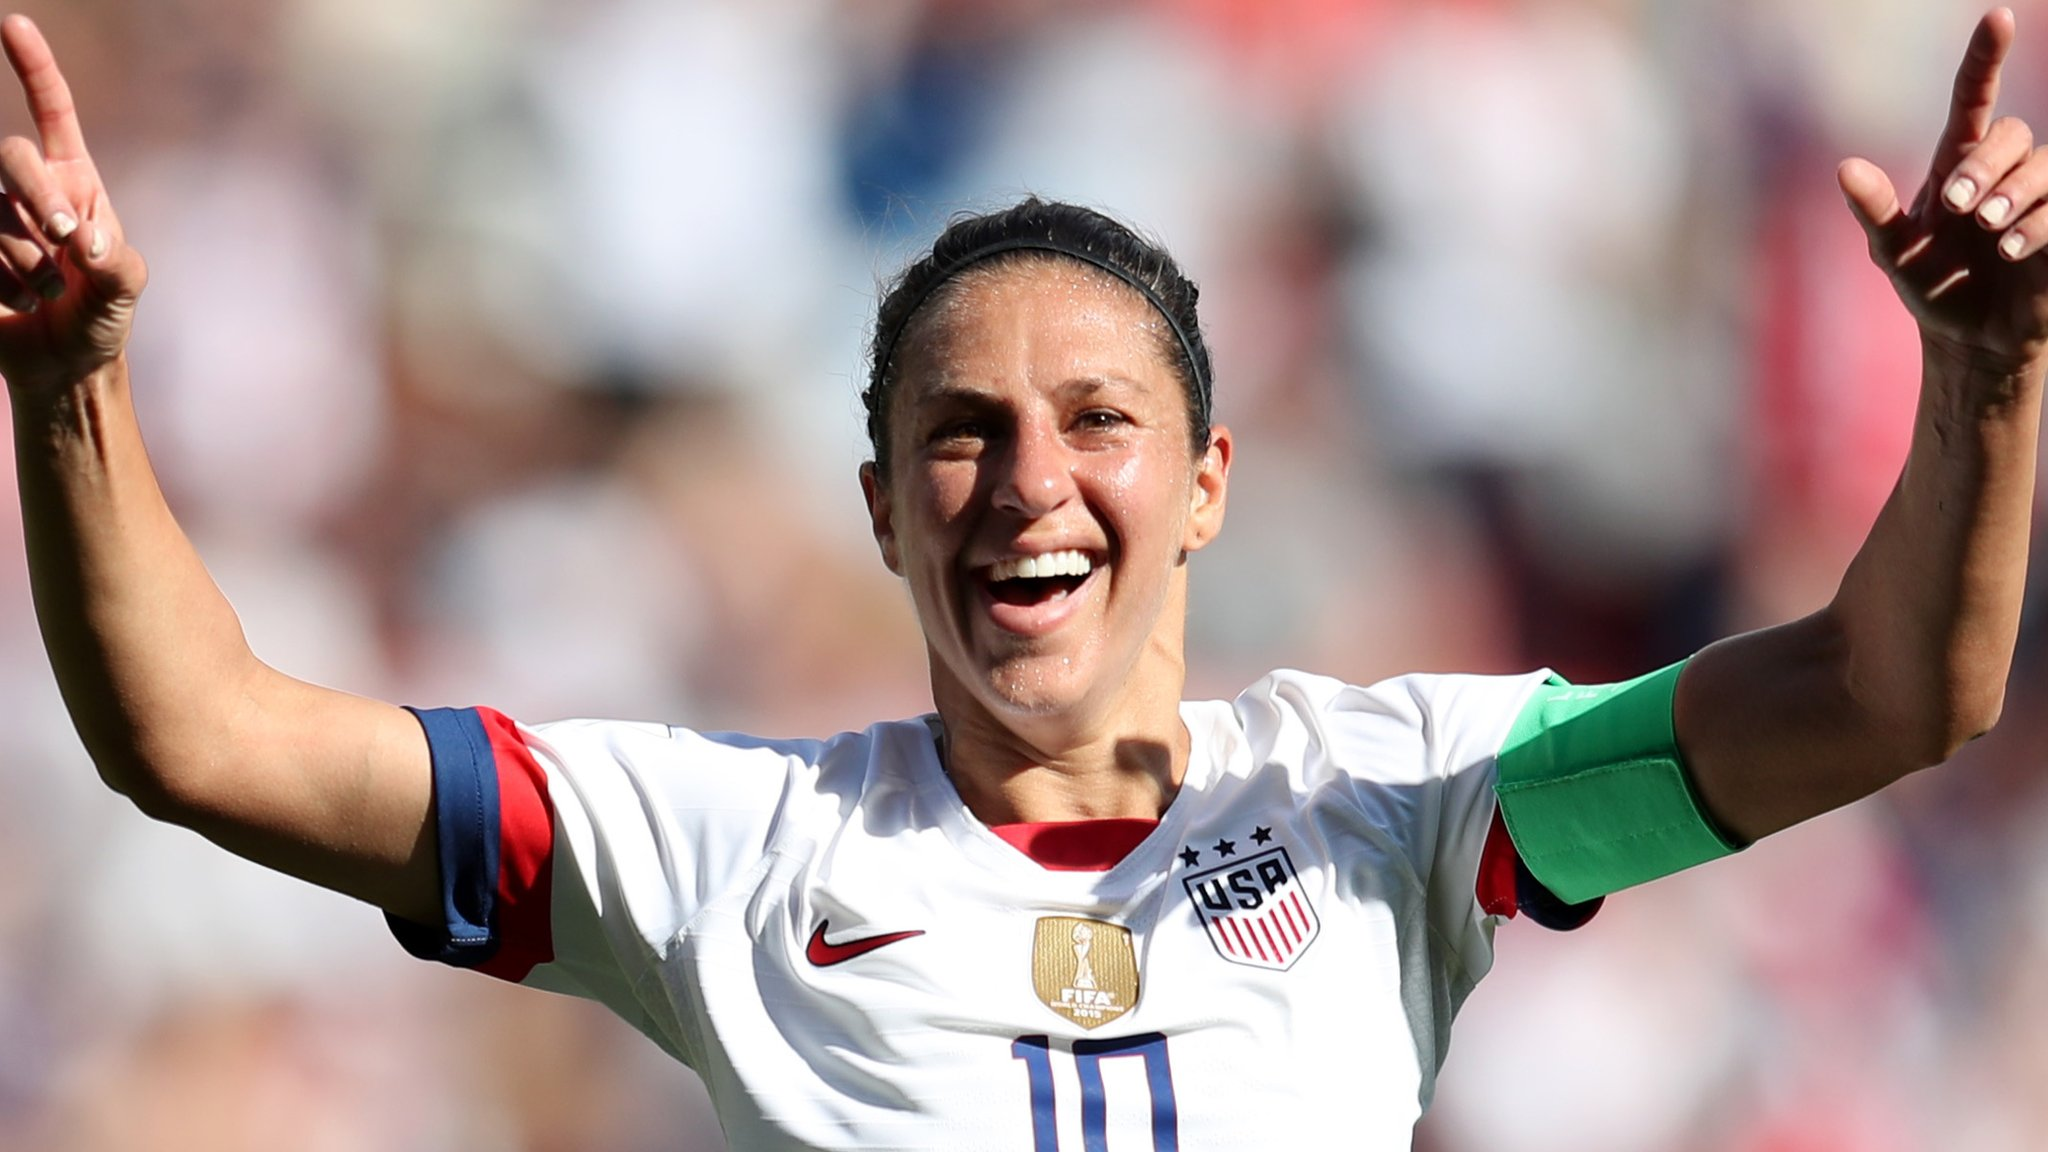 Women's World Cup: USA beat Chile 3-0 to reach last 16